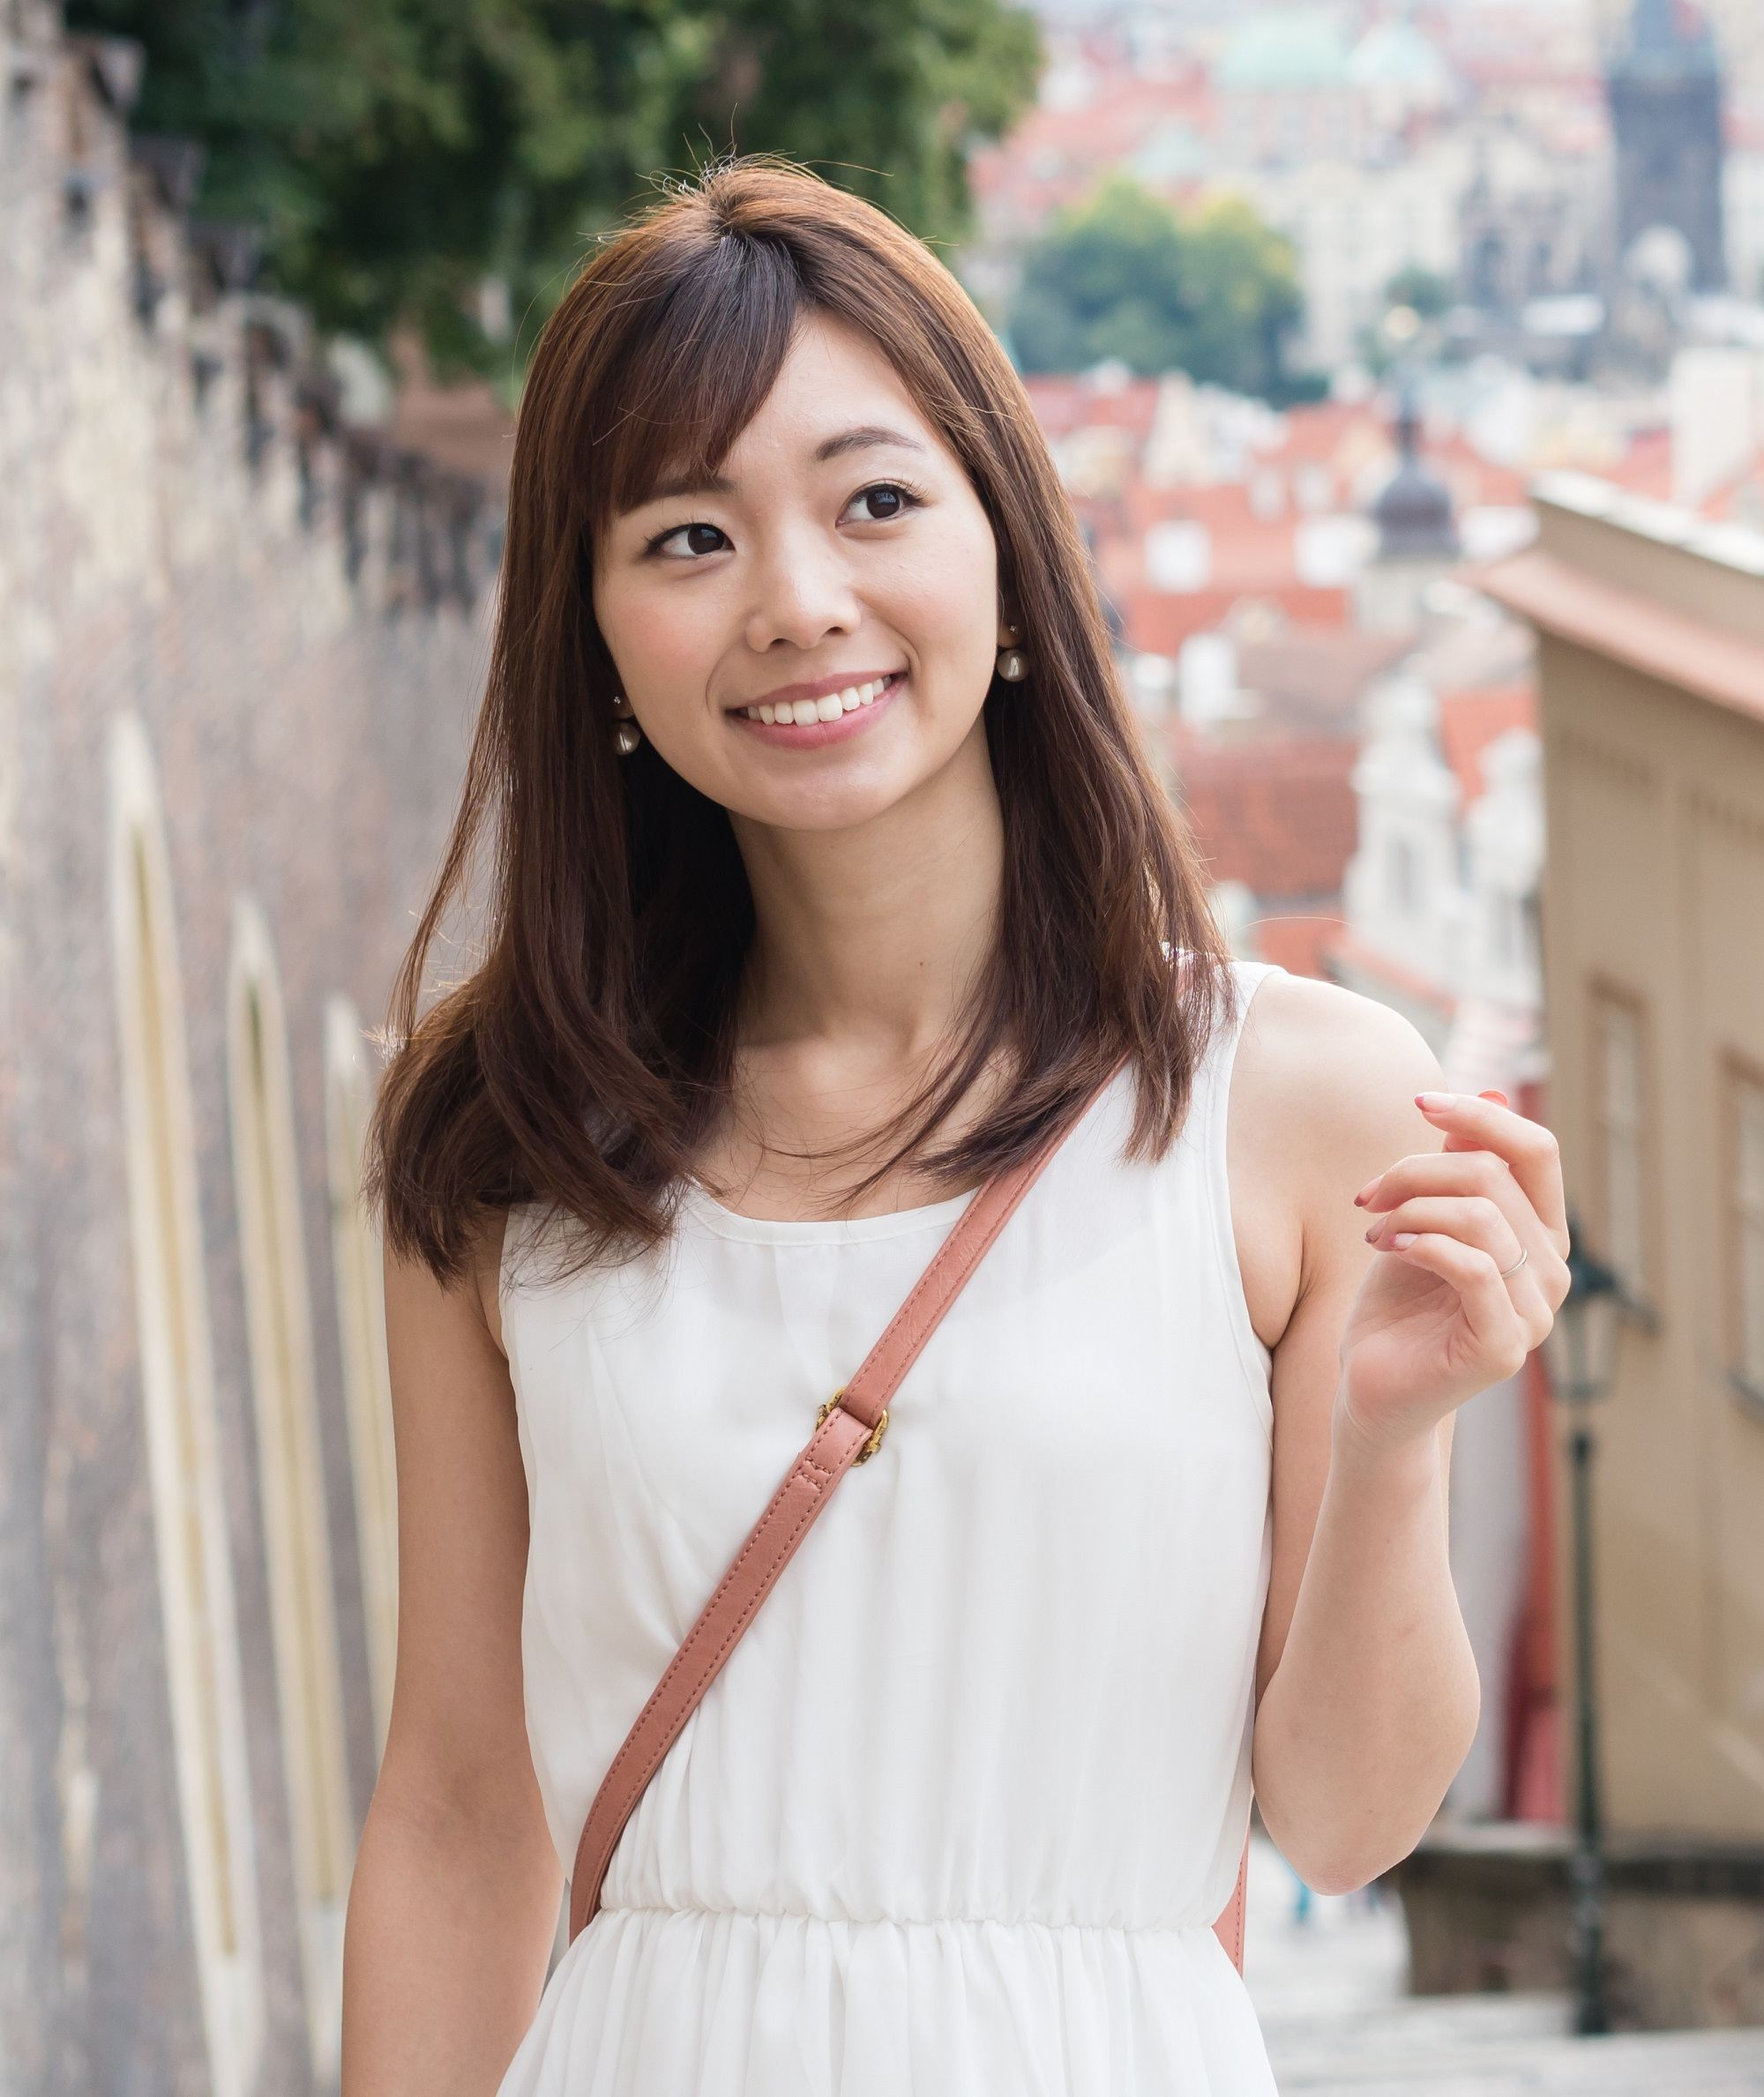 Long hair with side bangs: Asian woman with shoulder-length brown hair wearing a white sleeveless dress outdoors